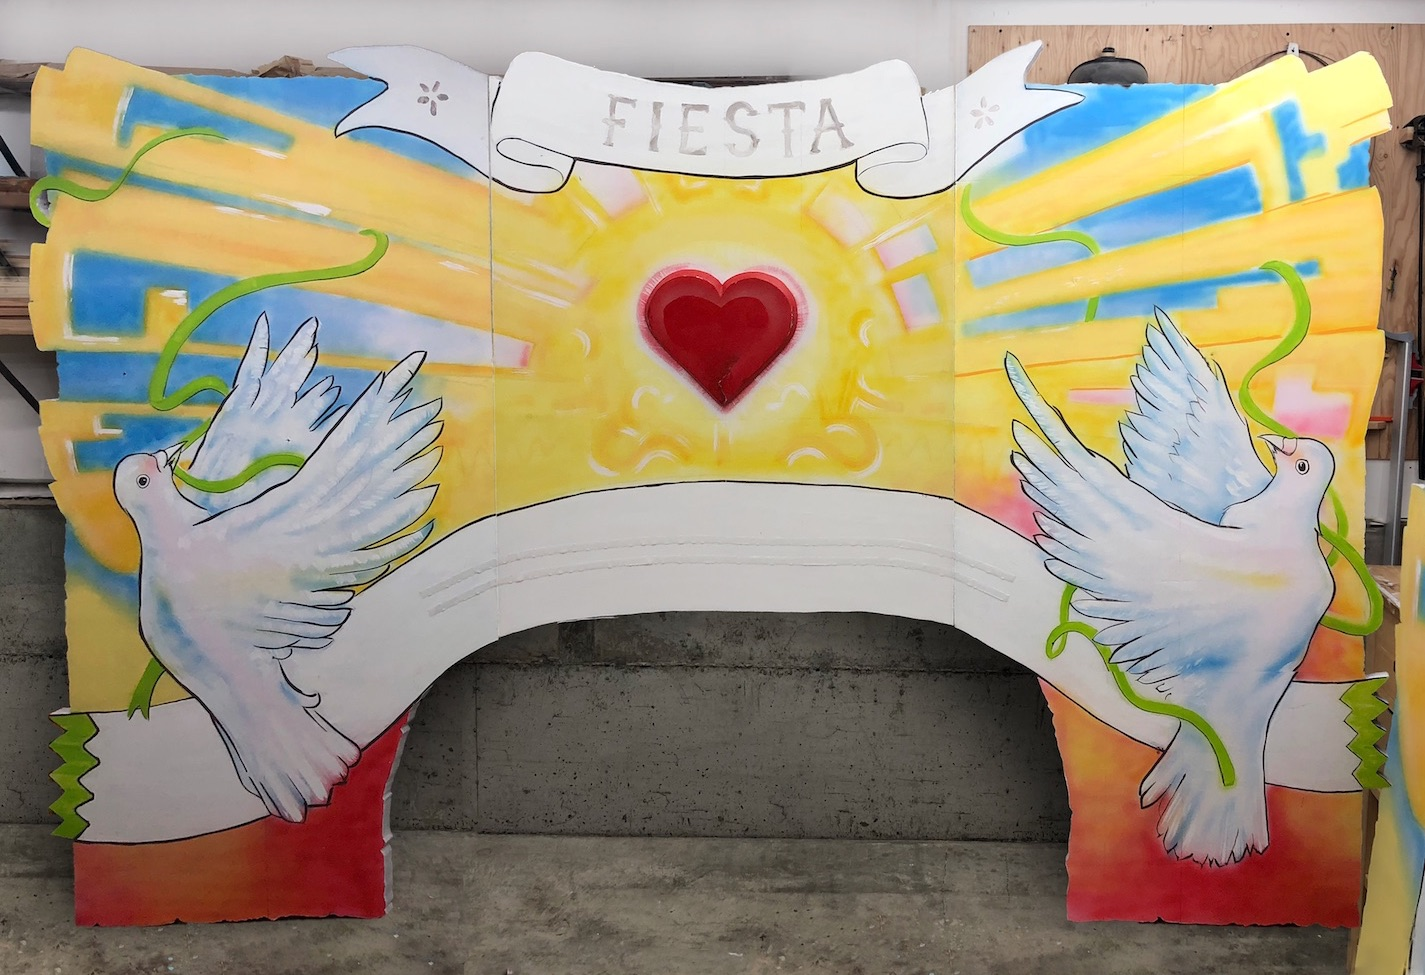 Twelve-foot wide arch painted with doves and banners around a heart.